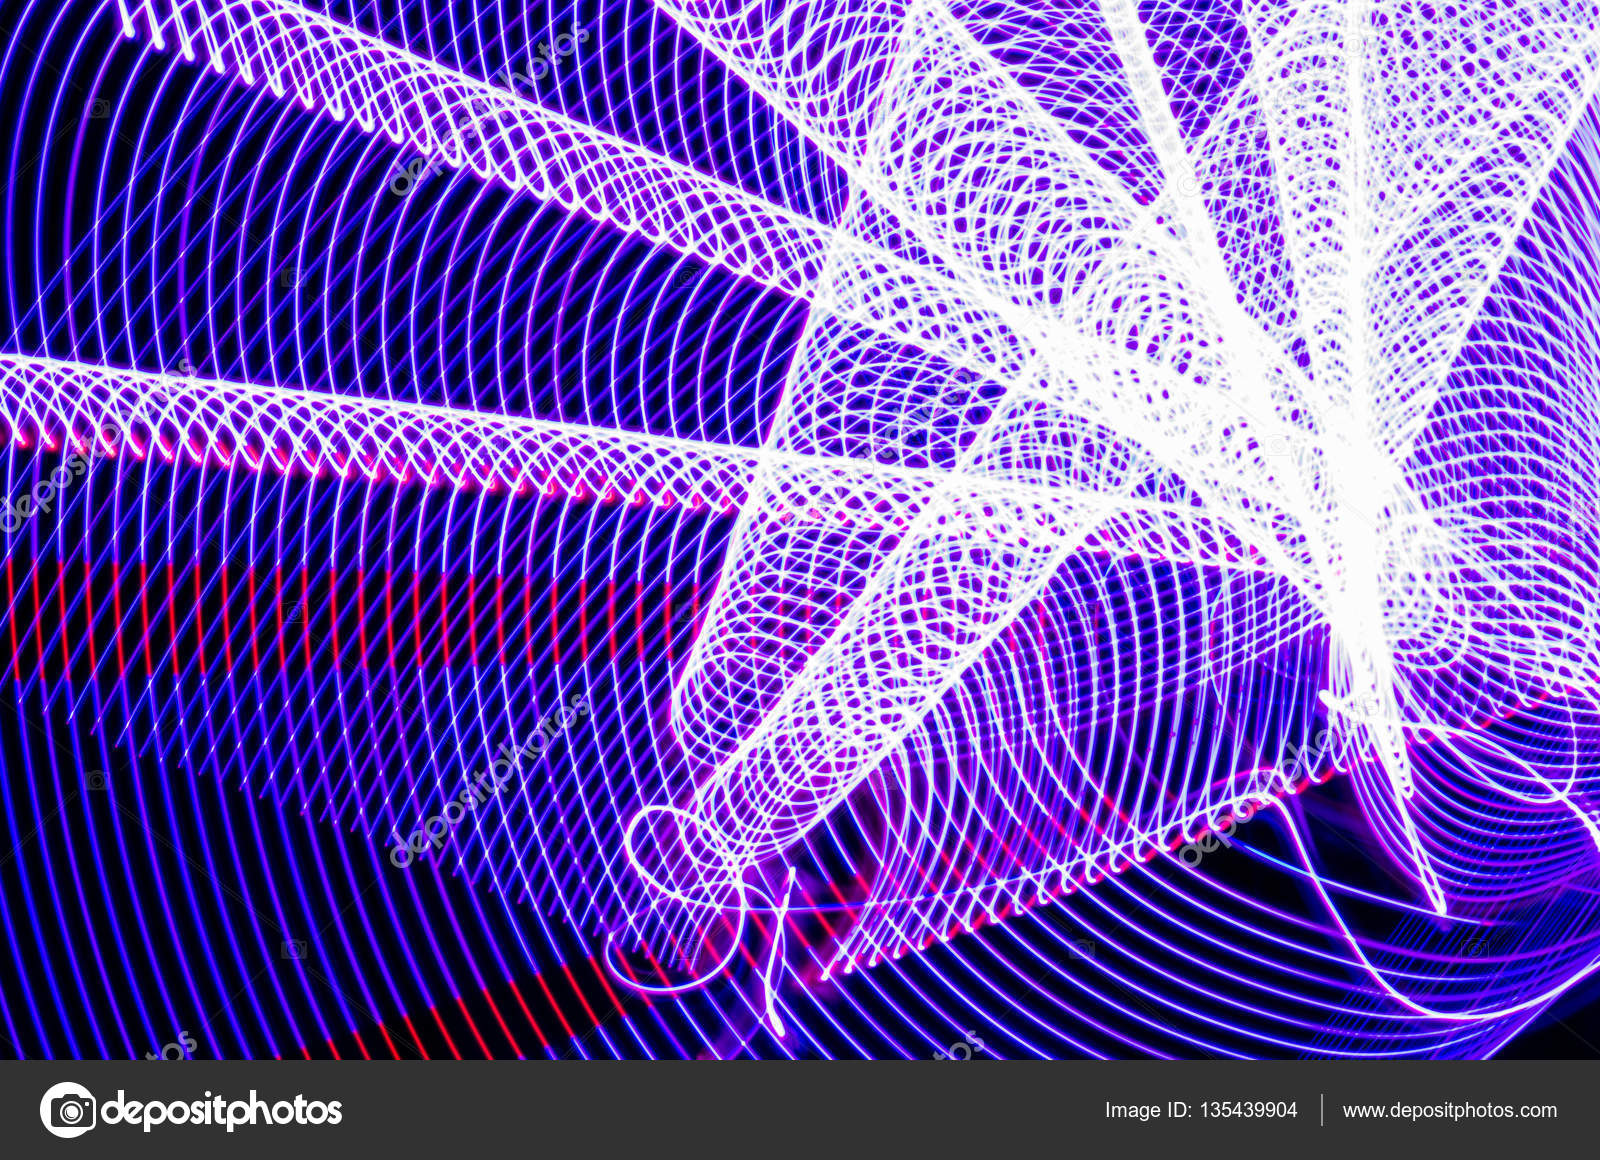 Light effects with blurred magic neon light curved lines